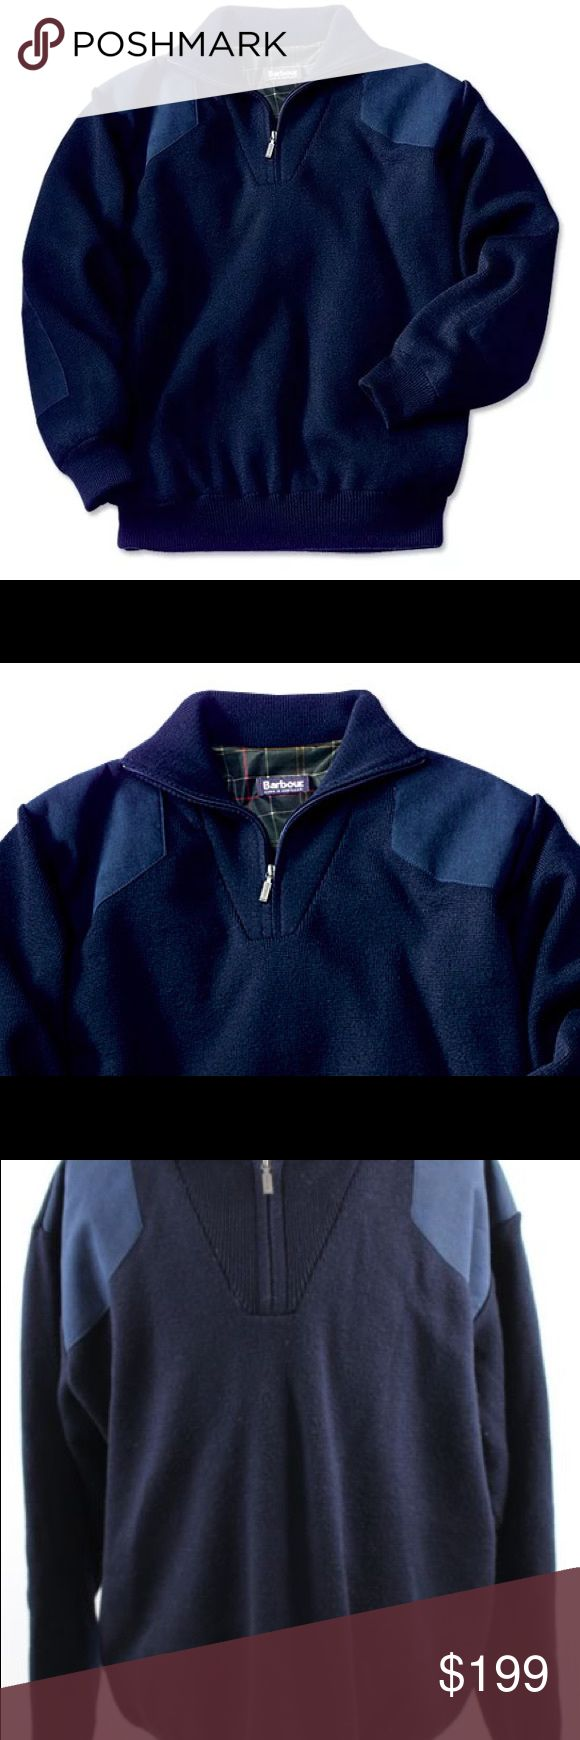 Barbour Storm Sweater $299 NWT NEW Barbour Storm Half Zip Sweater MENS XL Navy Blue Jumper  NEW WITH ORVIS RETAIL TAGS Waterproof, warm, washable half-zip sweater Crewneck pullover sweater Waterproof liner Reinforcing faux suede patches on shoulders and elbows 100% merino wool Machine washable Made in Scotland  Barbour of England: Size Charts for Men's Clothing  England's J. Barbour & Sons Since 1894 Barbour Sweaters Zip Up